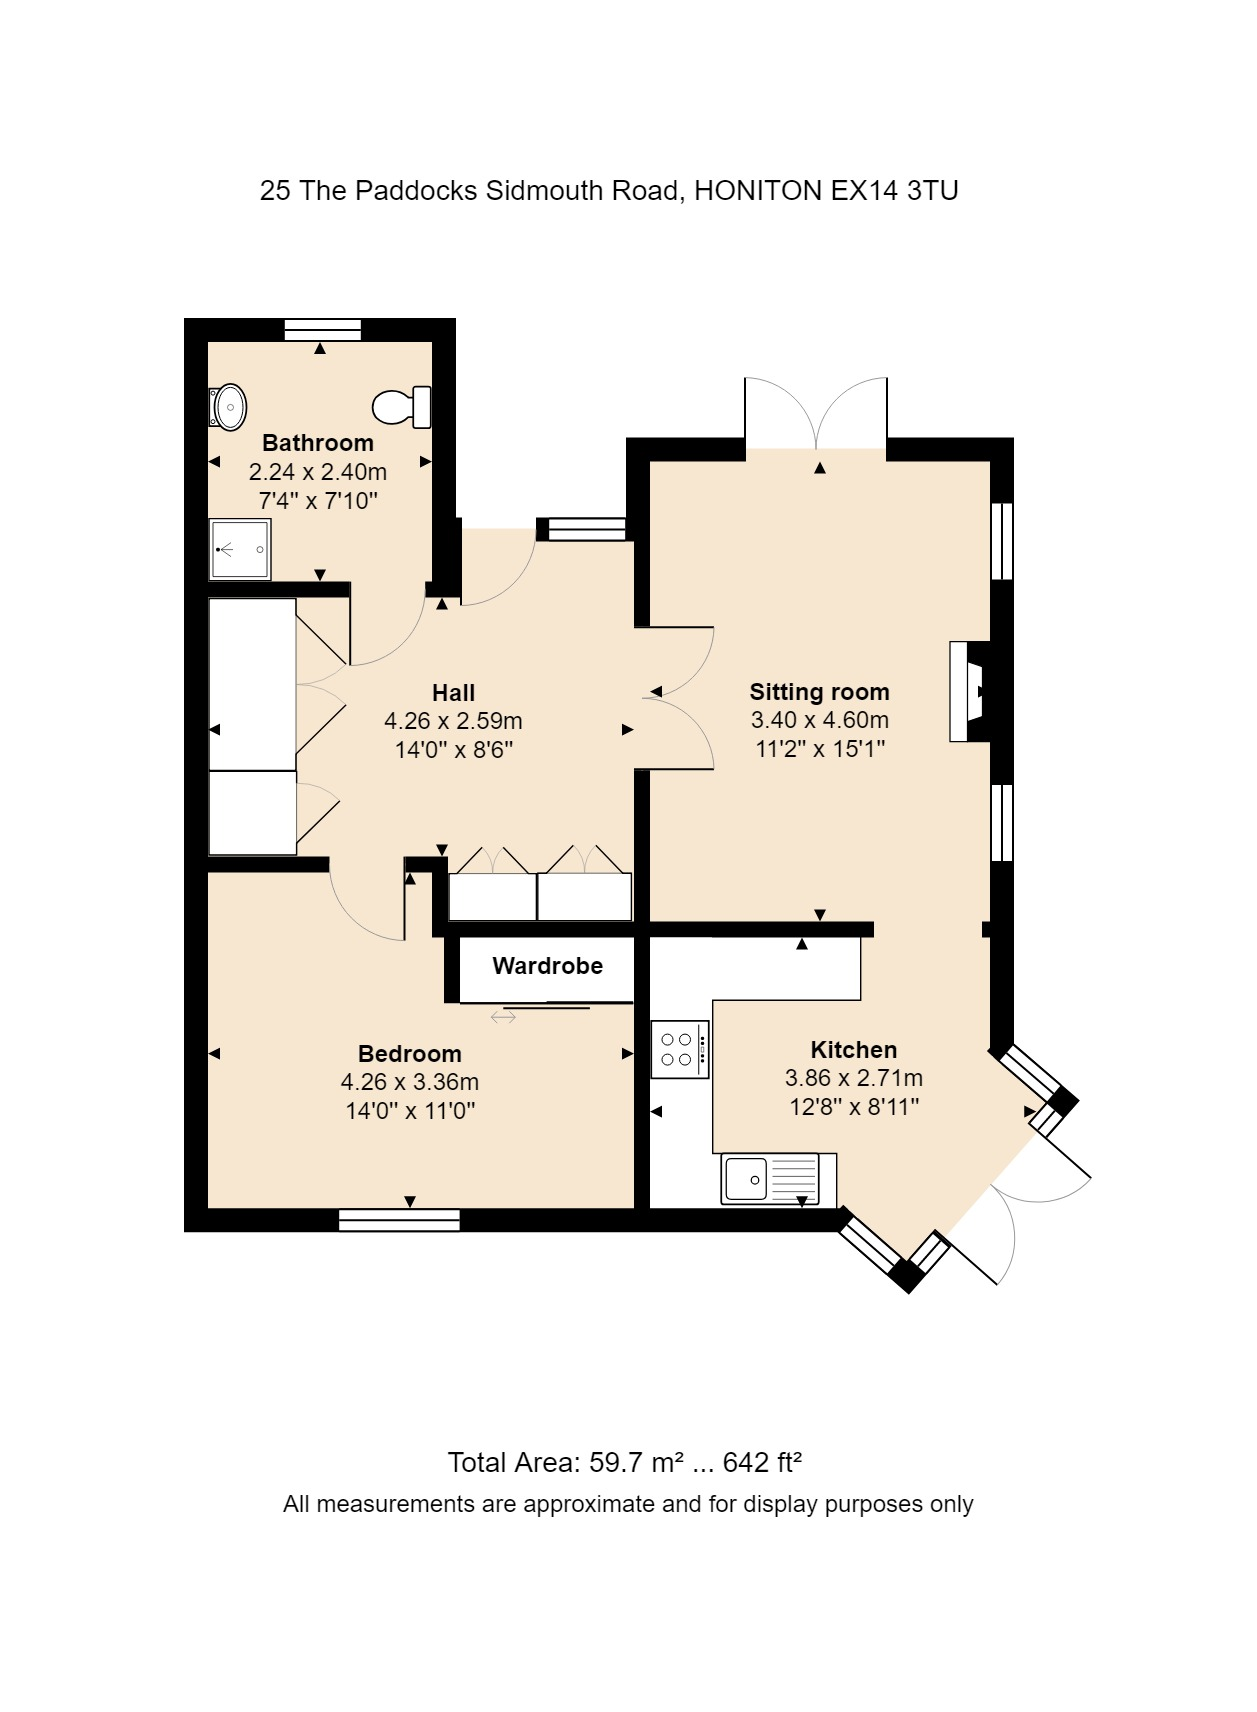 25 The Paddocks Floorplan